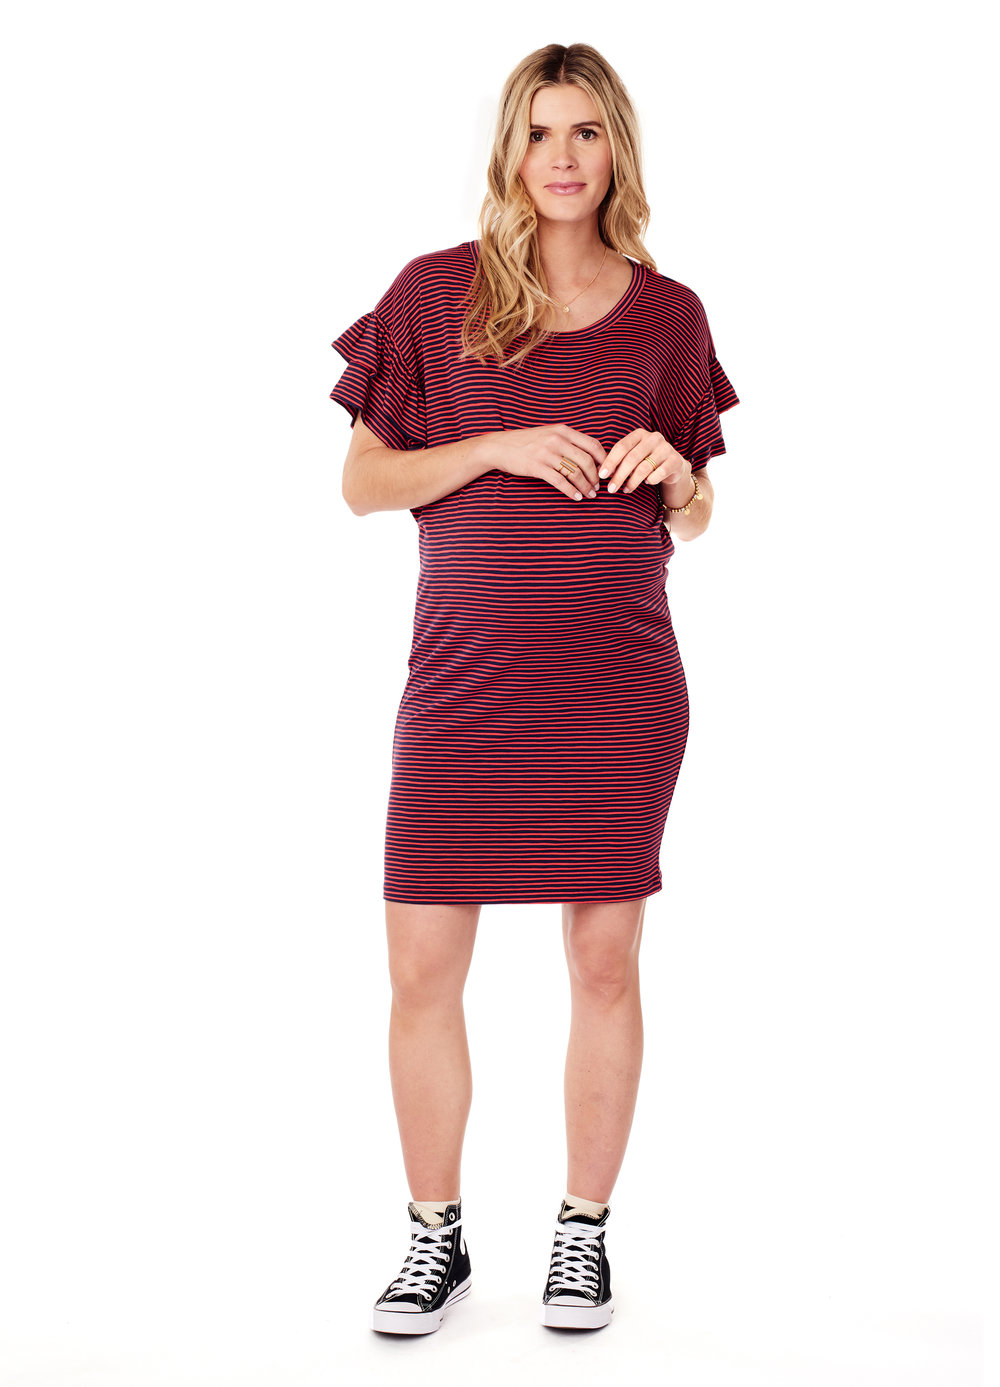 Ruffle Sleeve T-Shirt Dress • Ingrid & Isabel Maternity